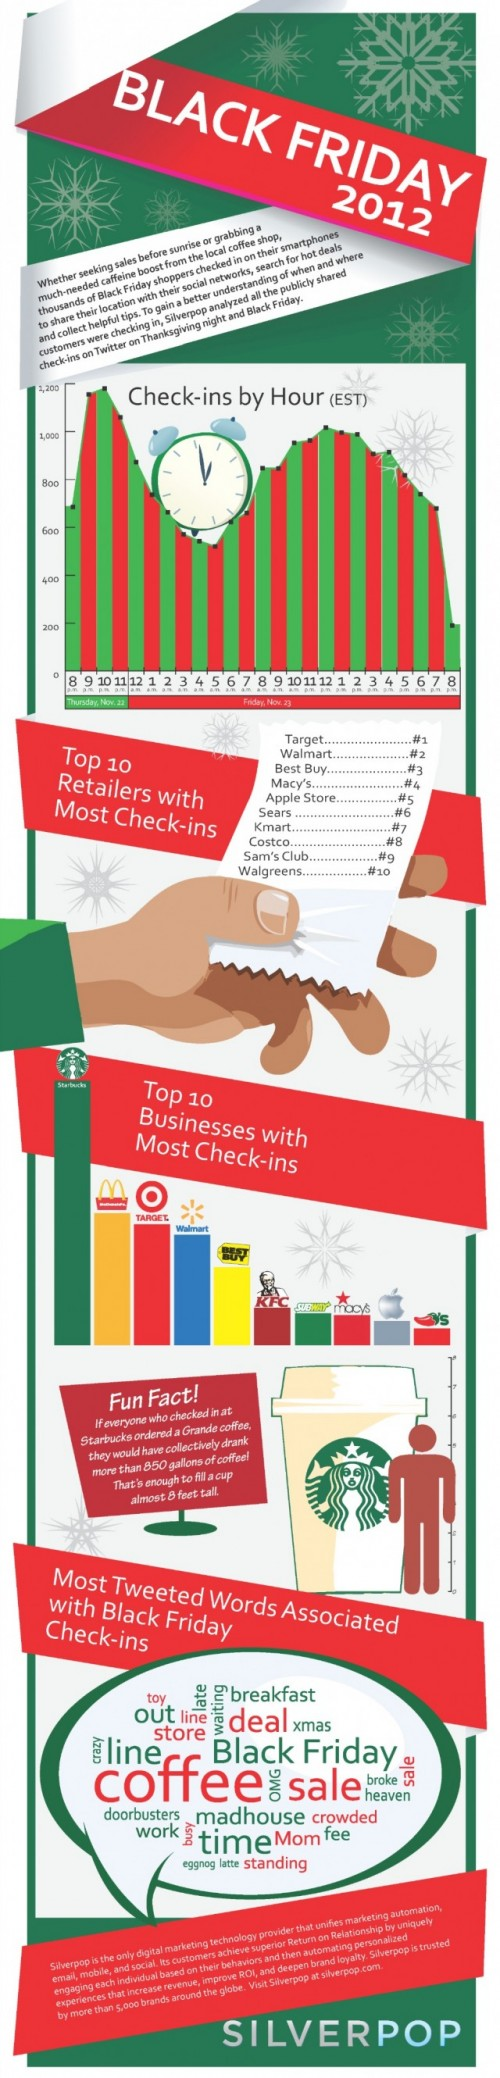 black friday tweets and check-ins